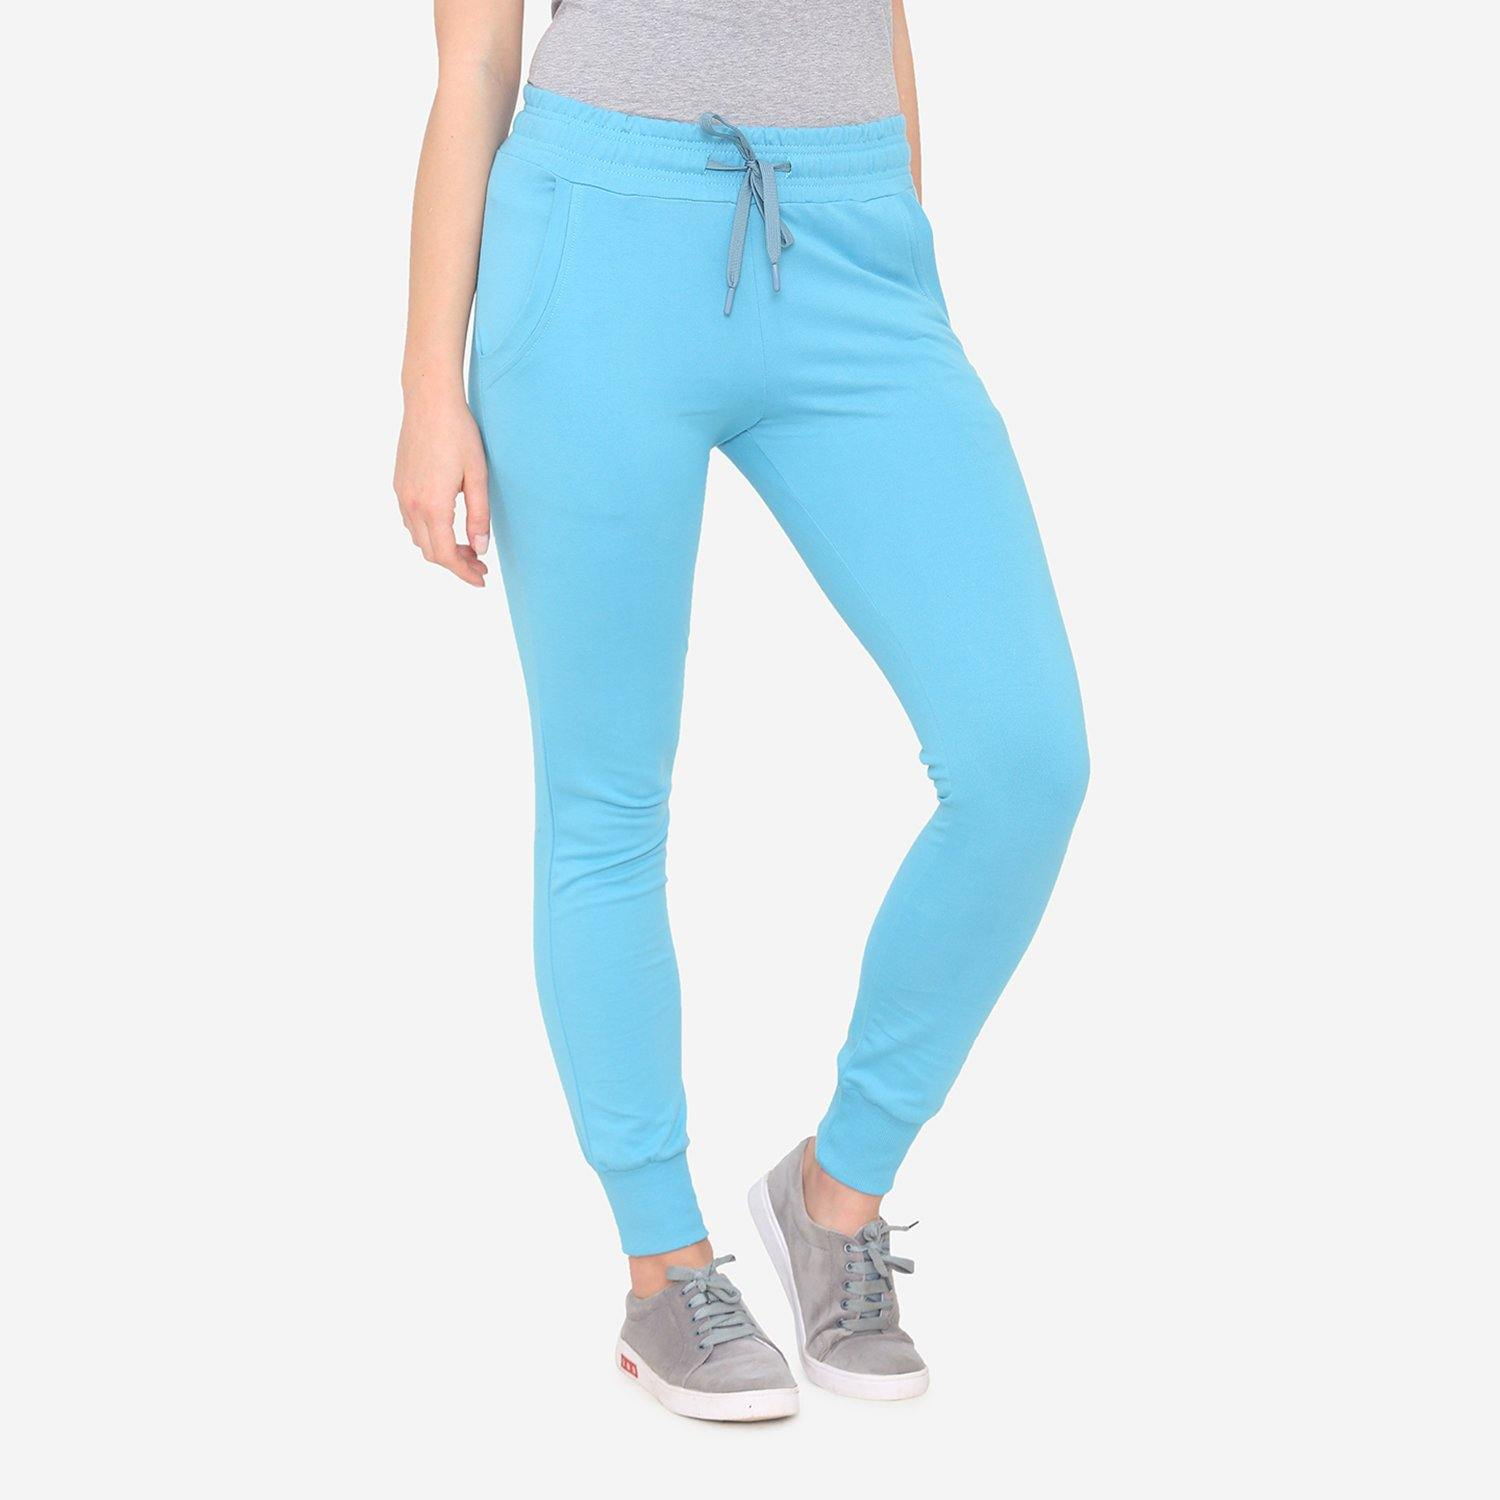 Women's Plain Casual Jogger Pants - Reaf Water